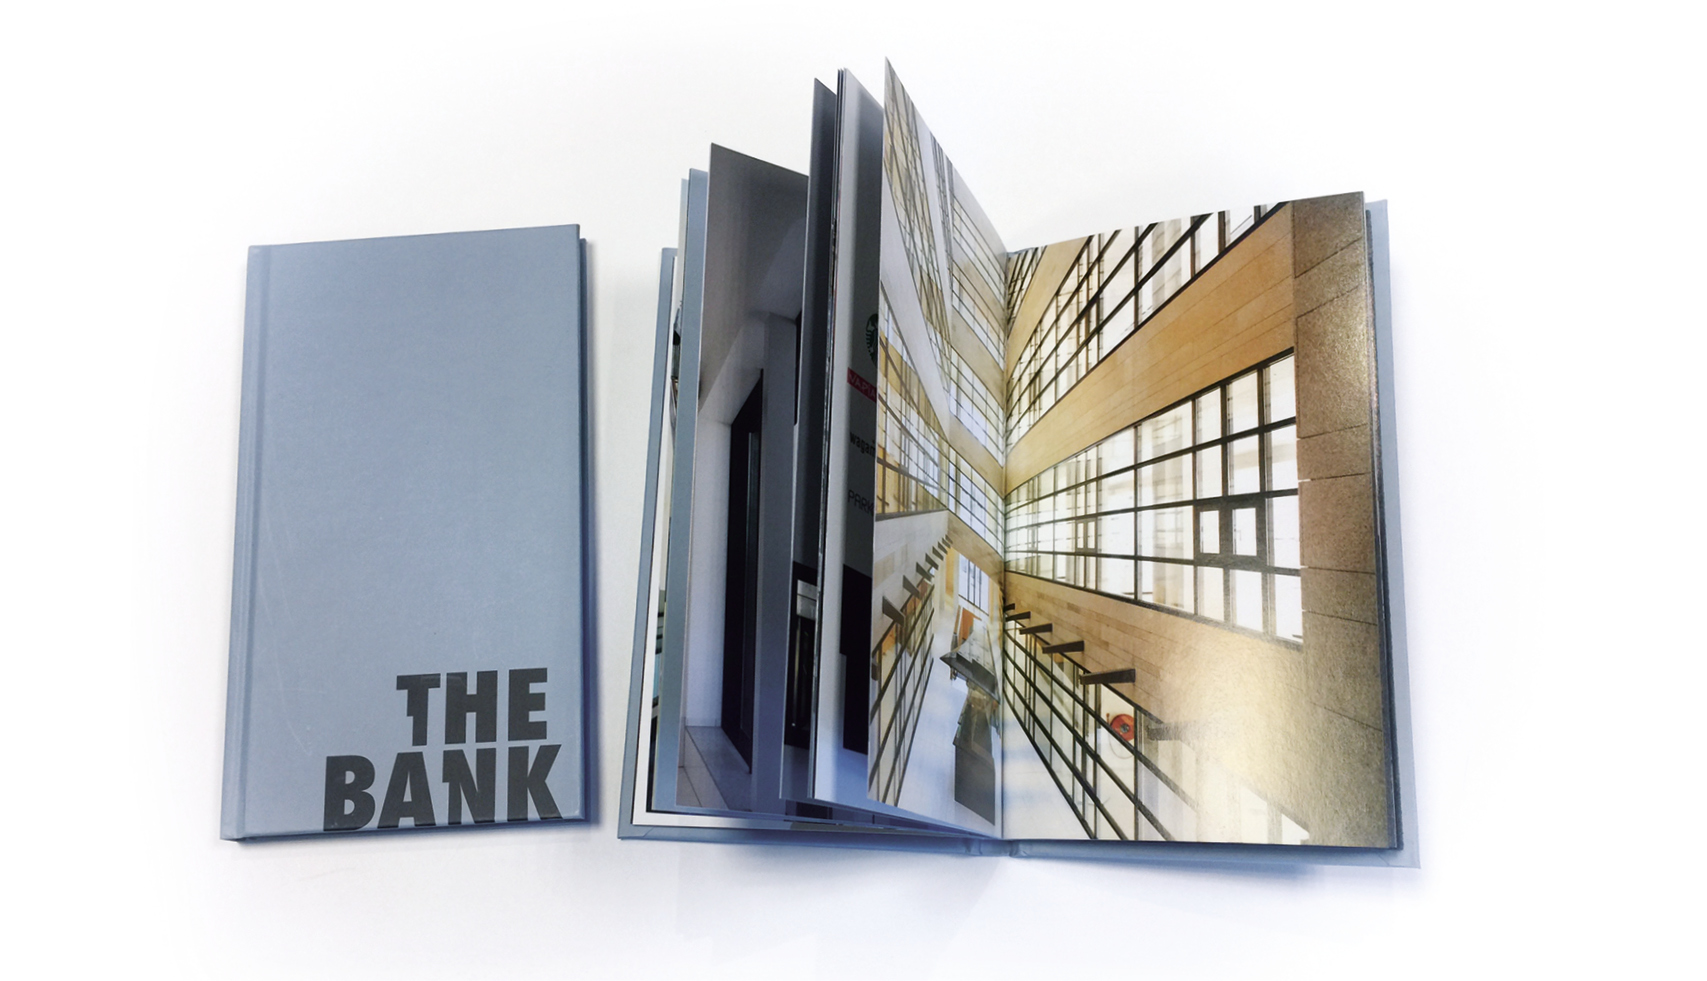 The Bank - Amsterdam